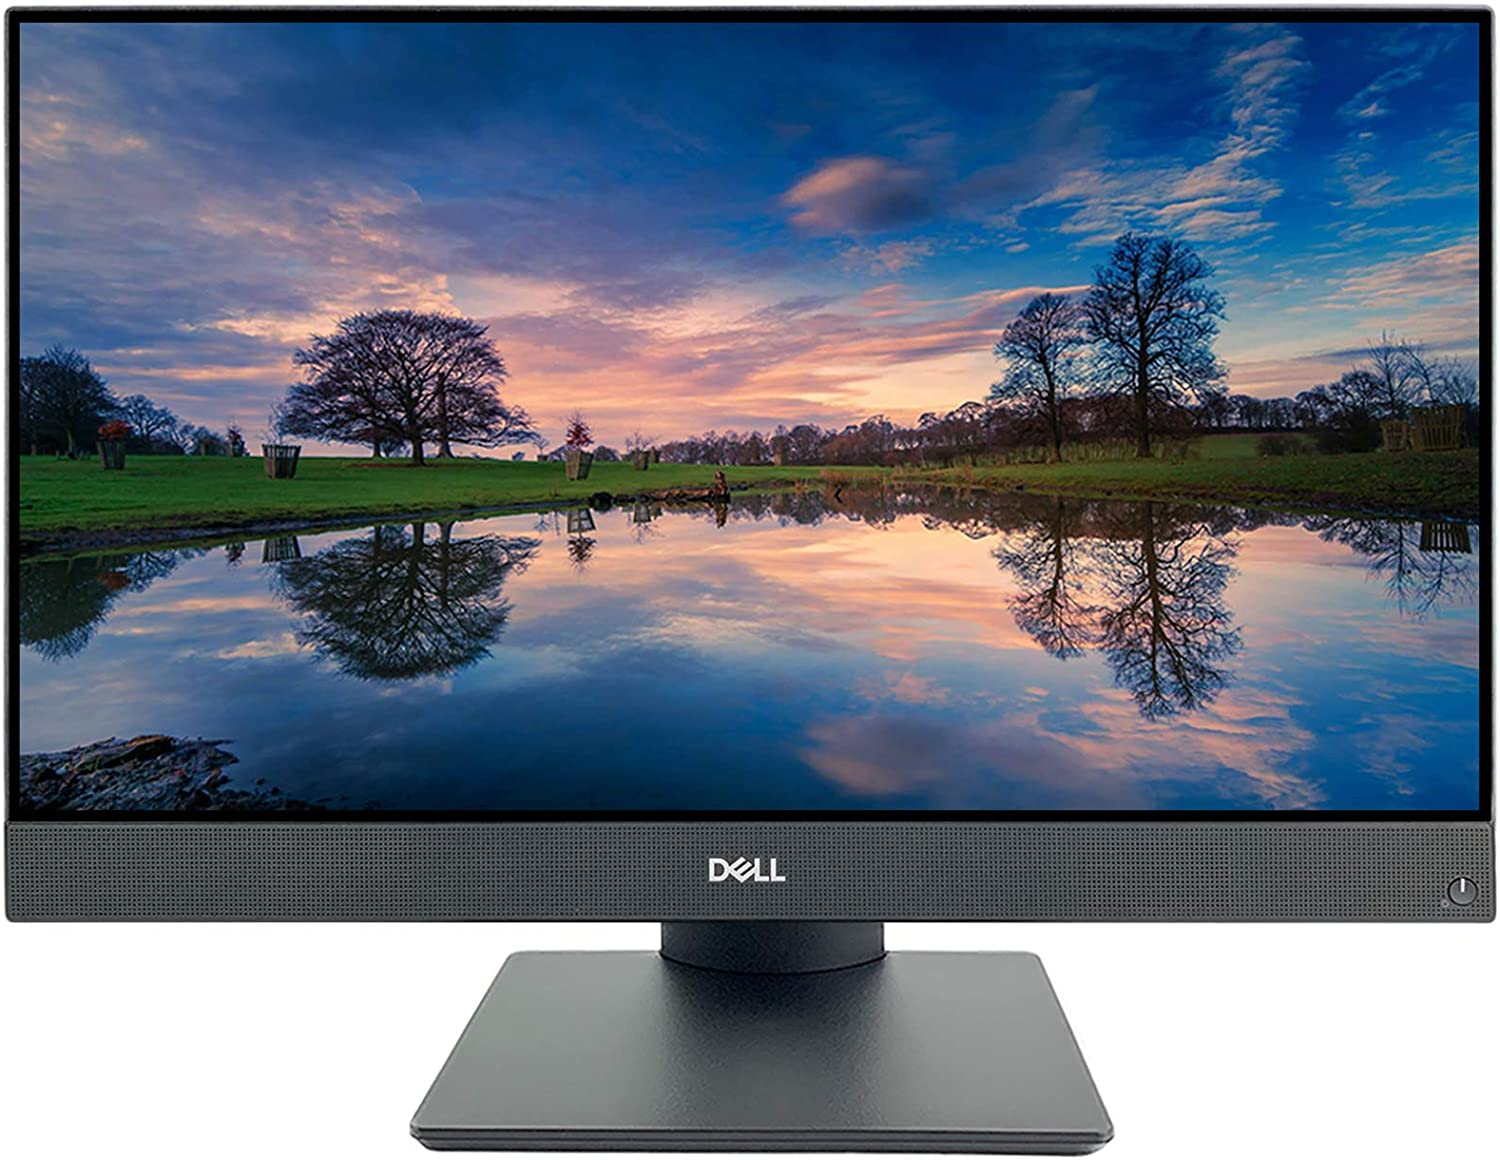 "Dell Optiplex 24 7000 Series 7460 23.8"" Full HD All-in-One Desktop - 8th Gen Intel 6-Core i7-8700 Processor up to 4.60 GHz, 16GB RAM, 512GB Solid State Drive, Intel UHD Graphics 630, Windows 10 Pro"